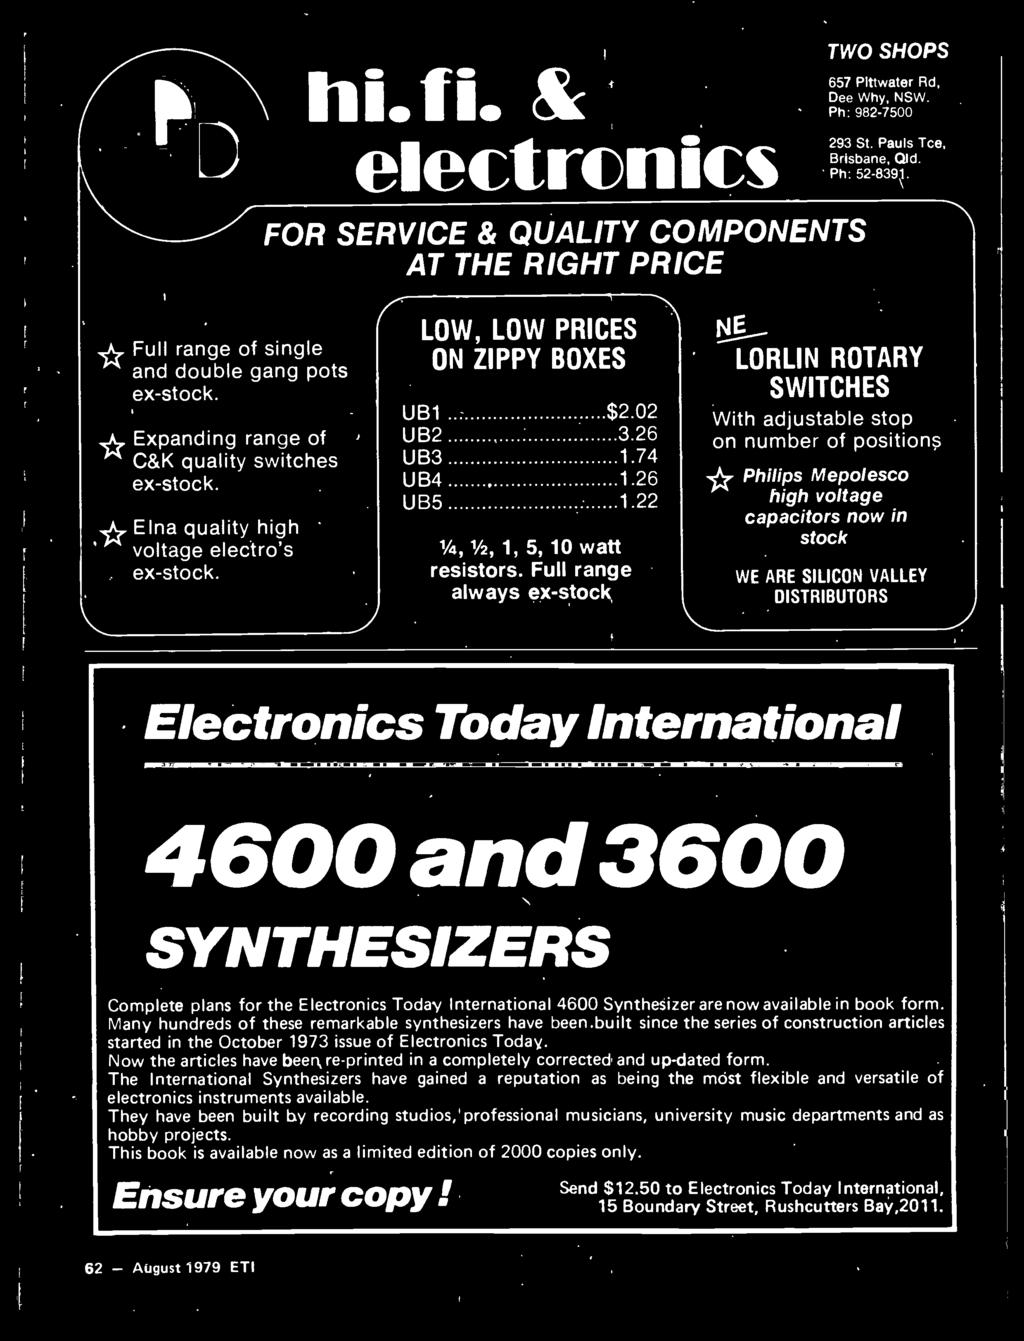 Today International 4600 and 3600 SYNTHESIZERS Complete plans for the Electronics Today International 4600 Synthesizer are now available in book form.